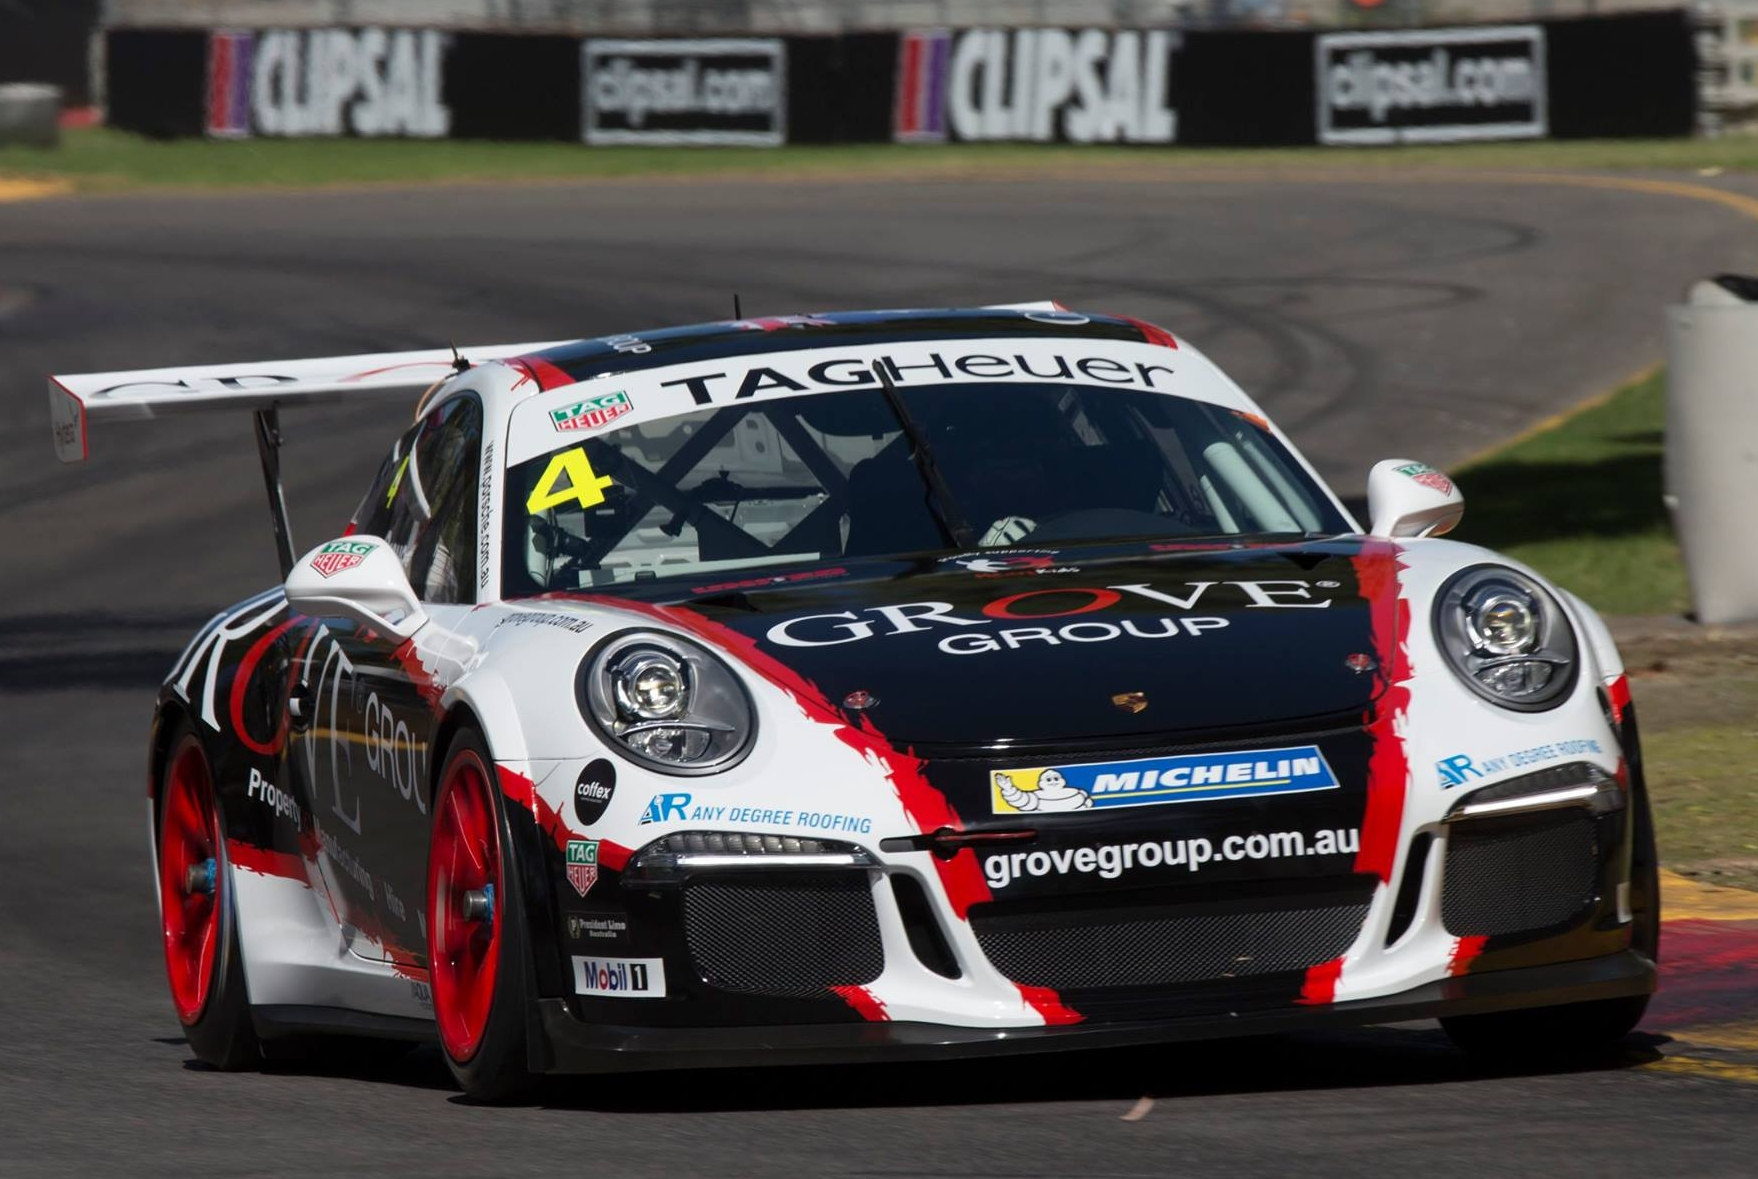 Stephen Grove is seen at the wheel of the Grove Racing Porsche